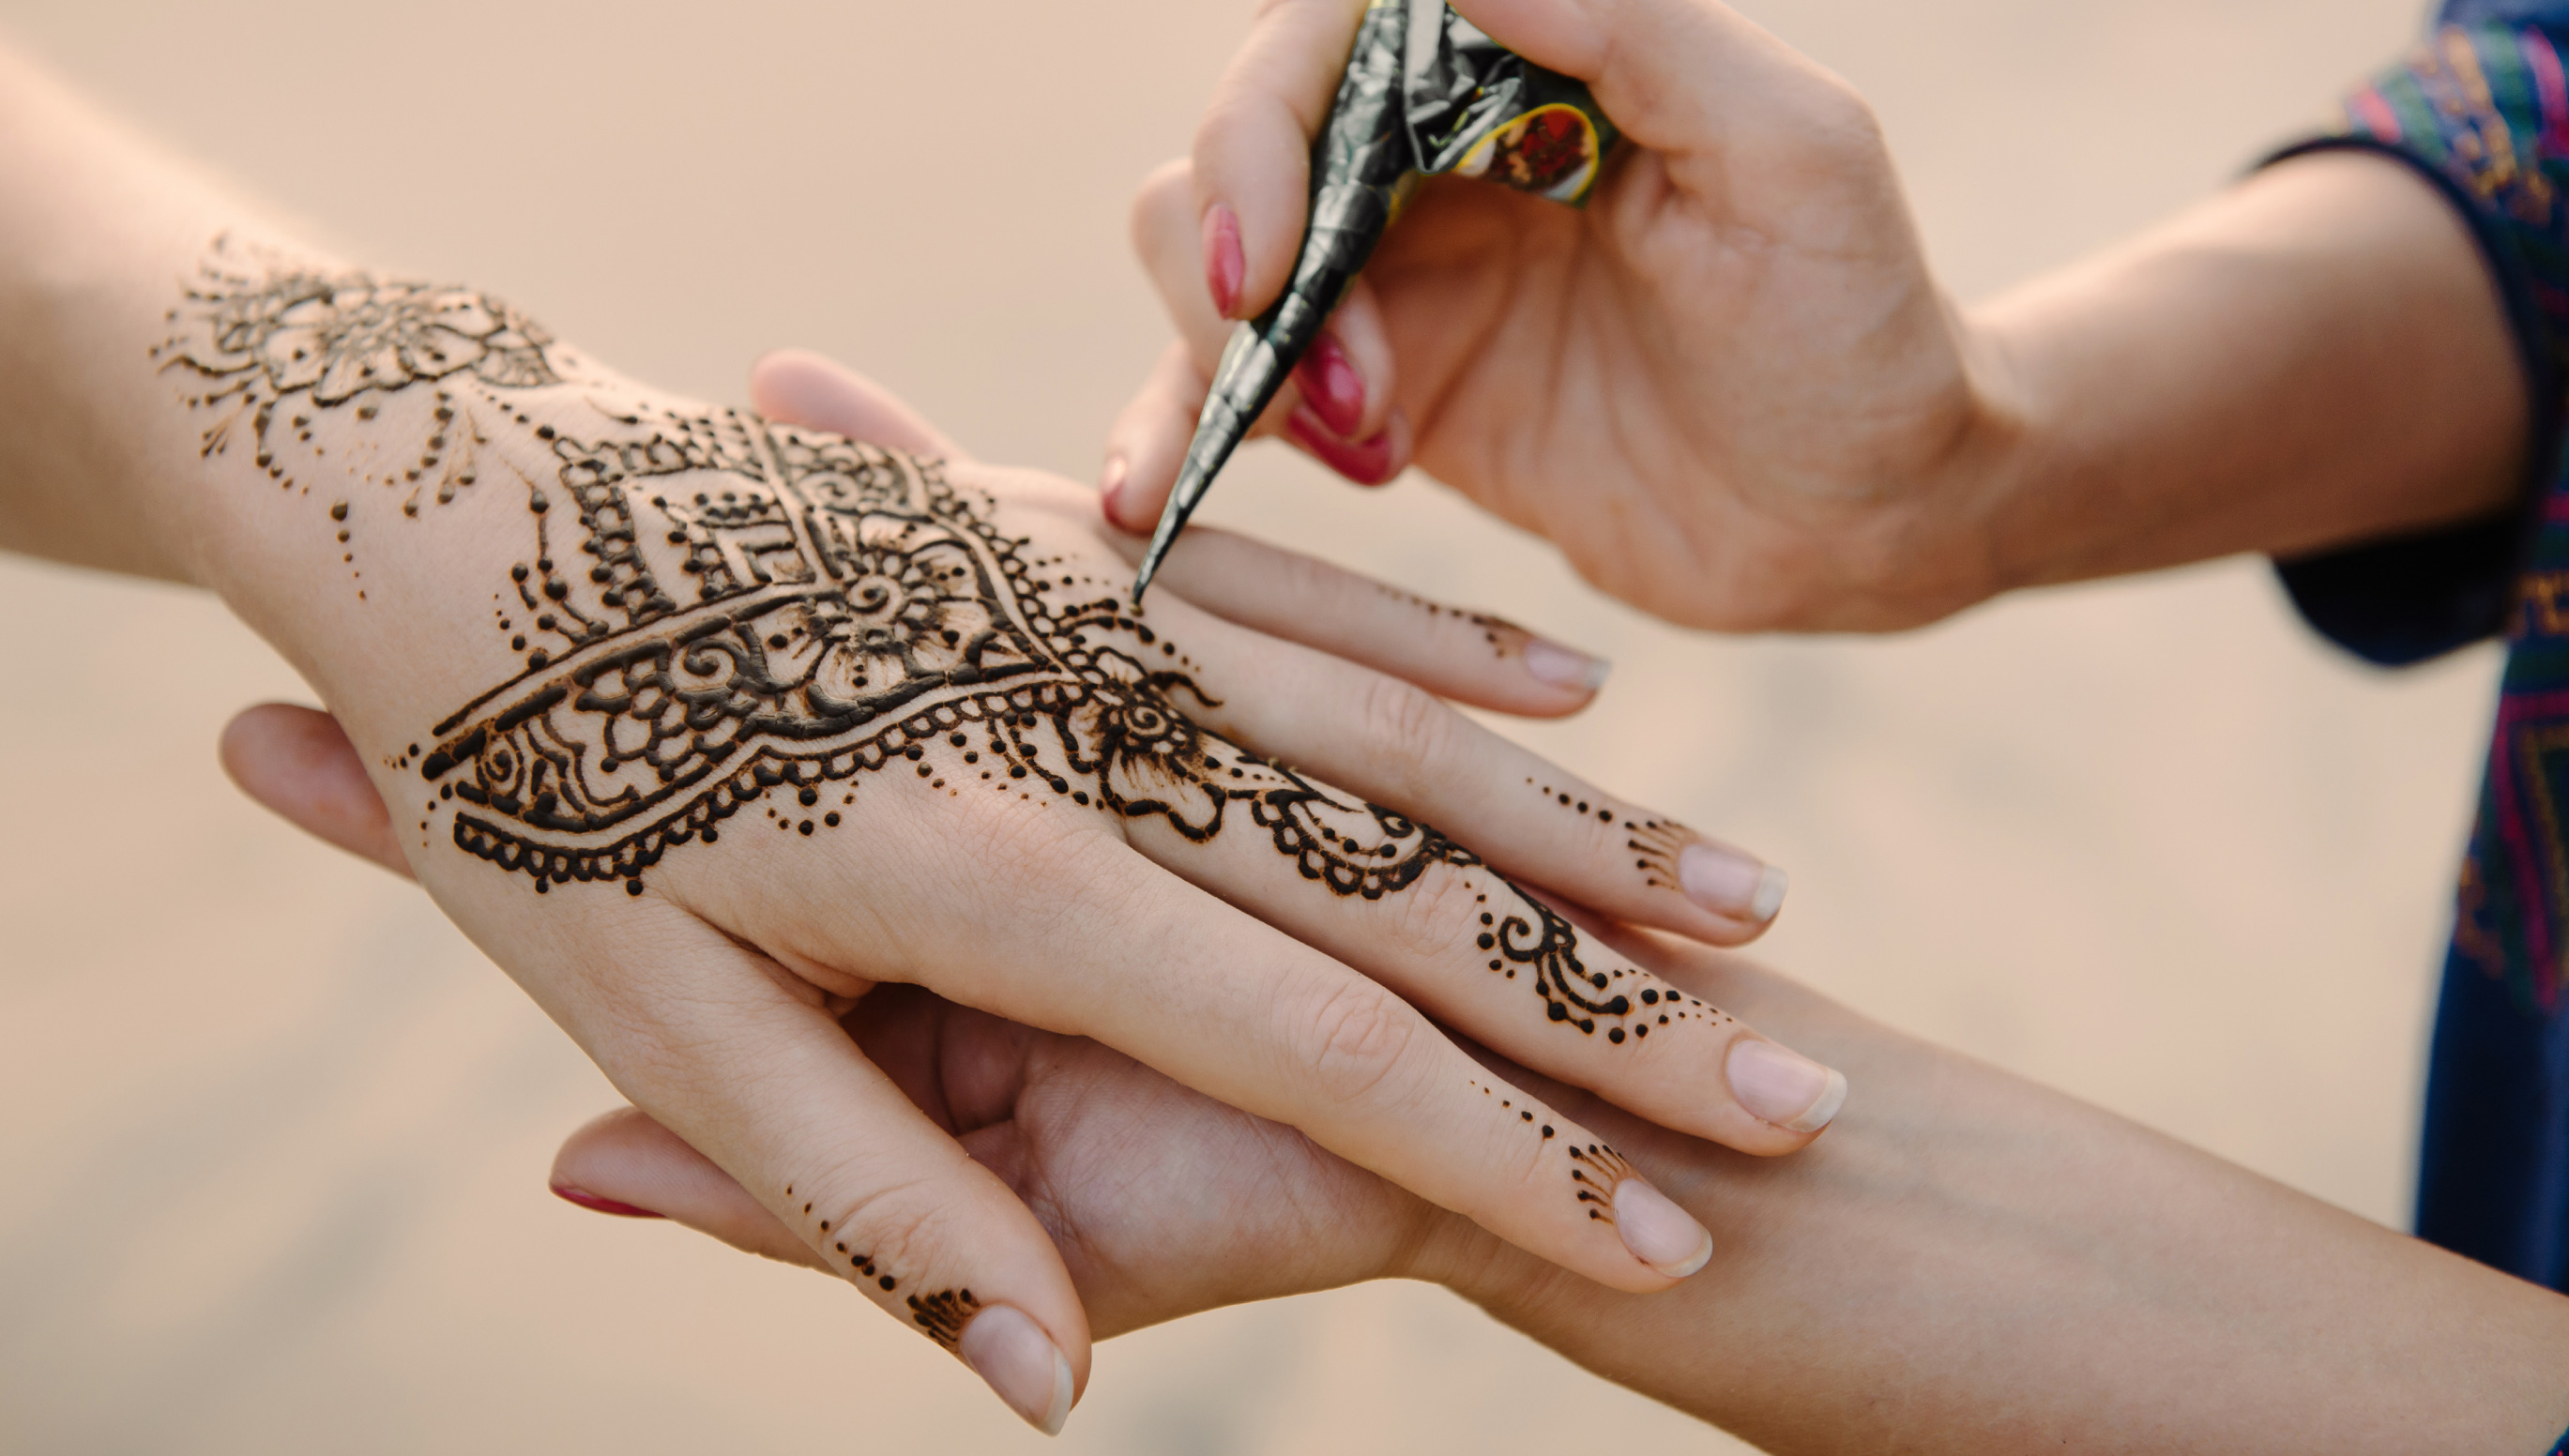 HHow to Make Henna at Home?